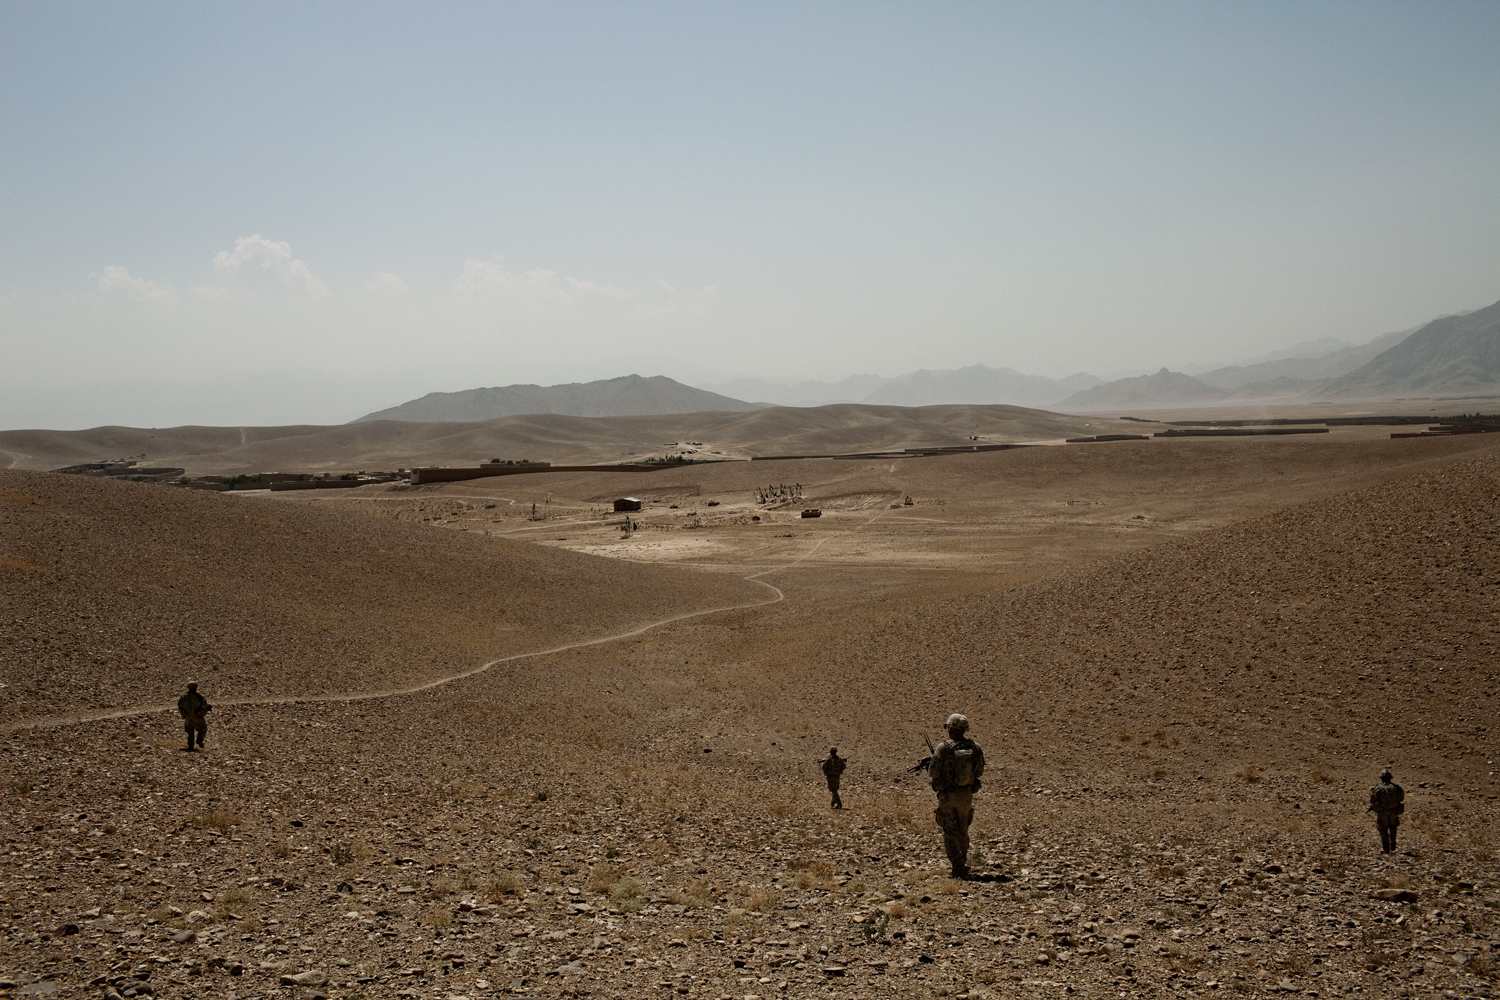 U.S. Army soldiers patrol in the Tangi Valley during an operation in Wardak Province, Afghanistan.